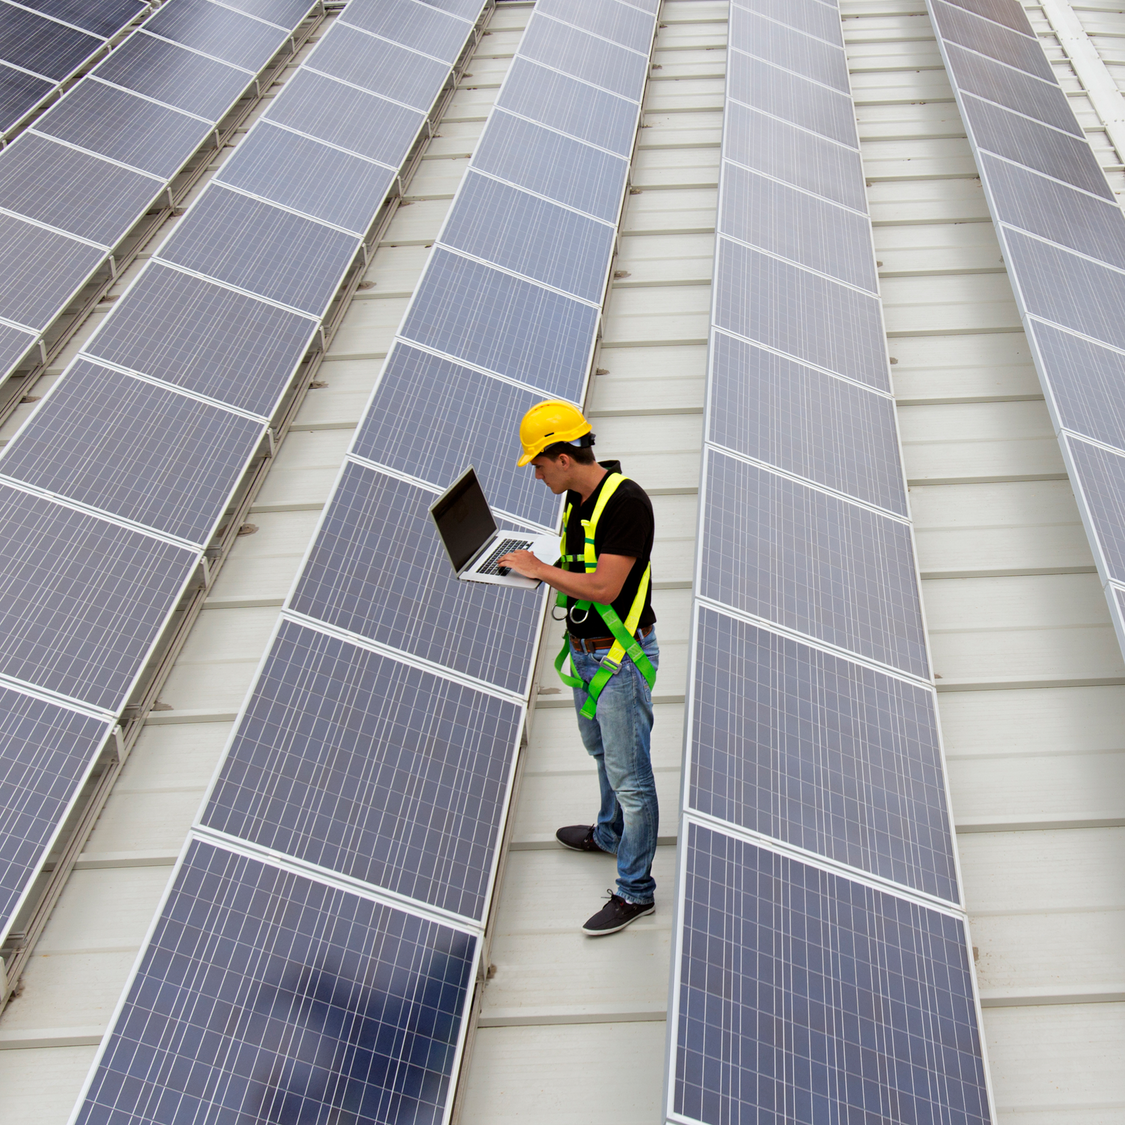 Technician with laptop standing around mounted solar panels, testing and calibrating the system